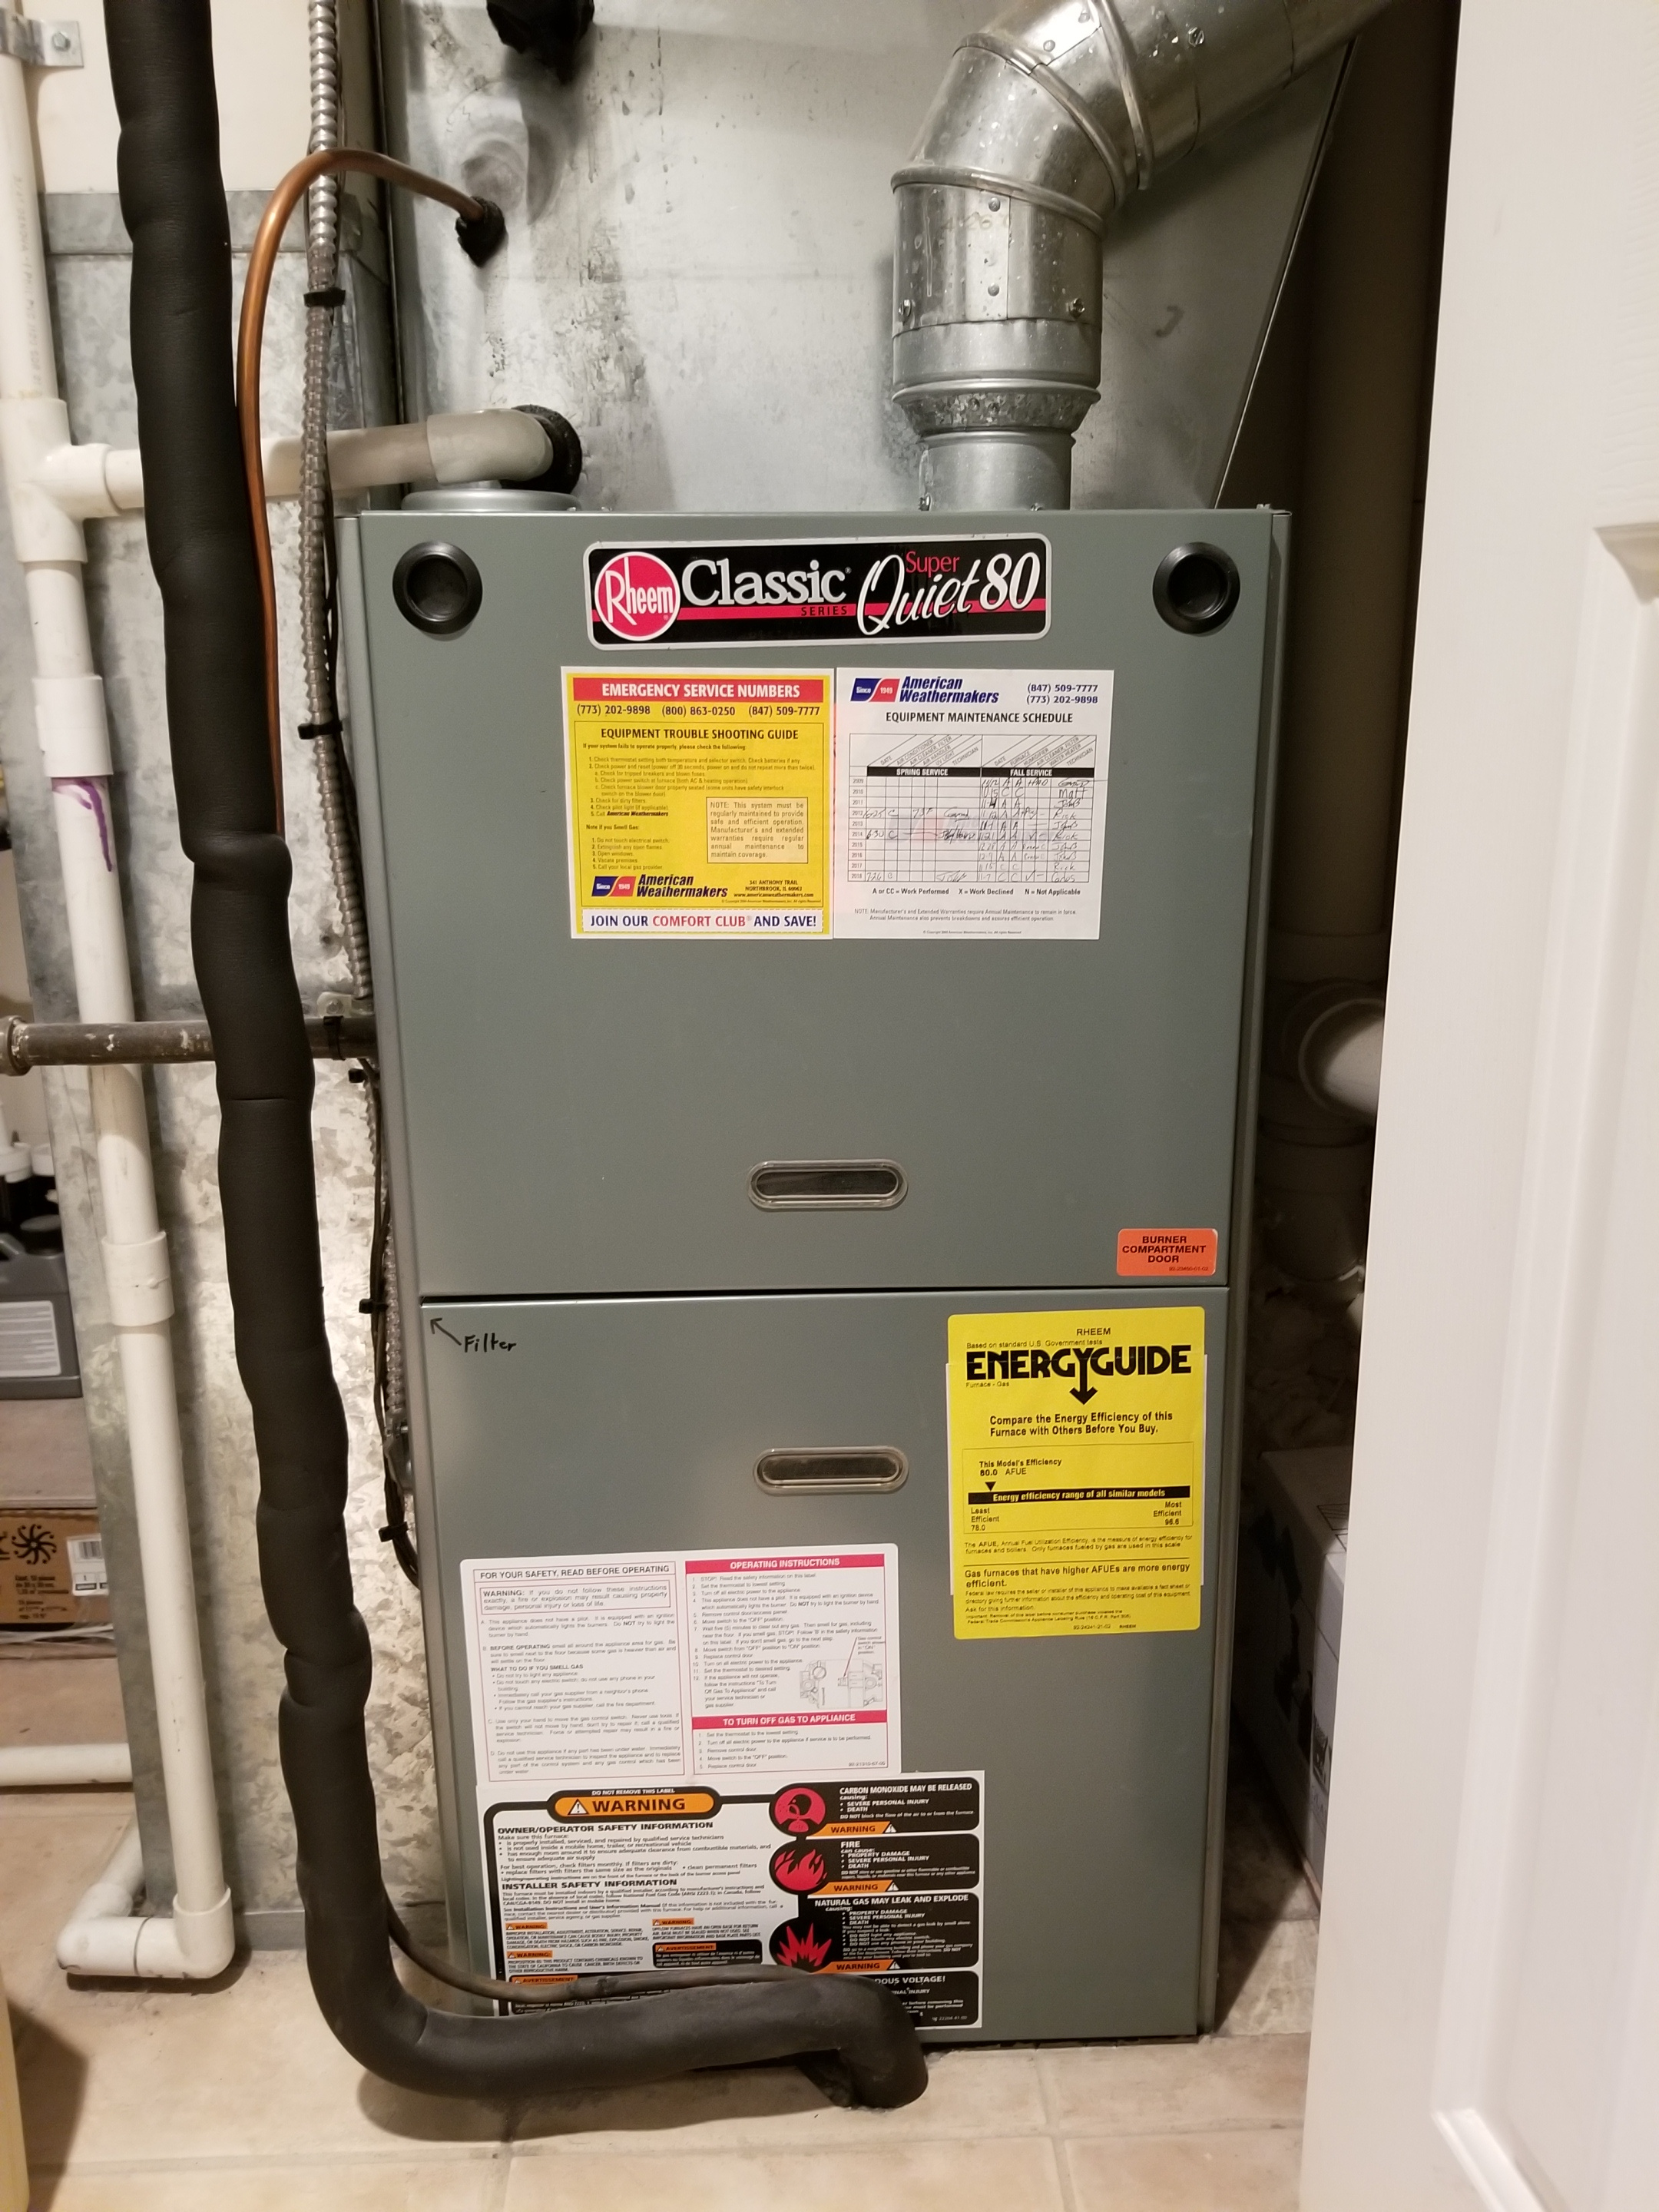 Performed annual maintenance on the Rheem furnace and Aprilaire humidifier and made adjustments to improve the overall efficiency and life expectancy of the equipment